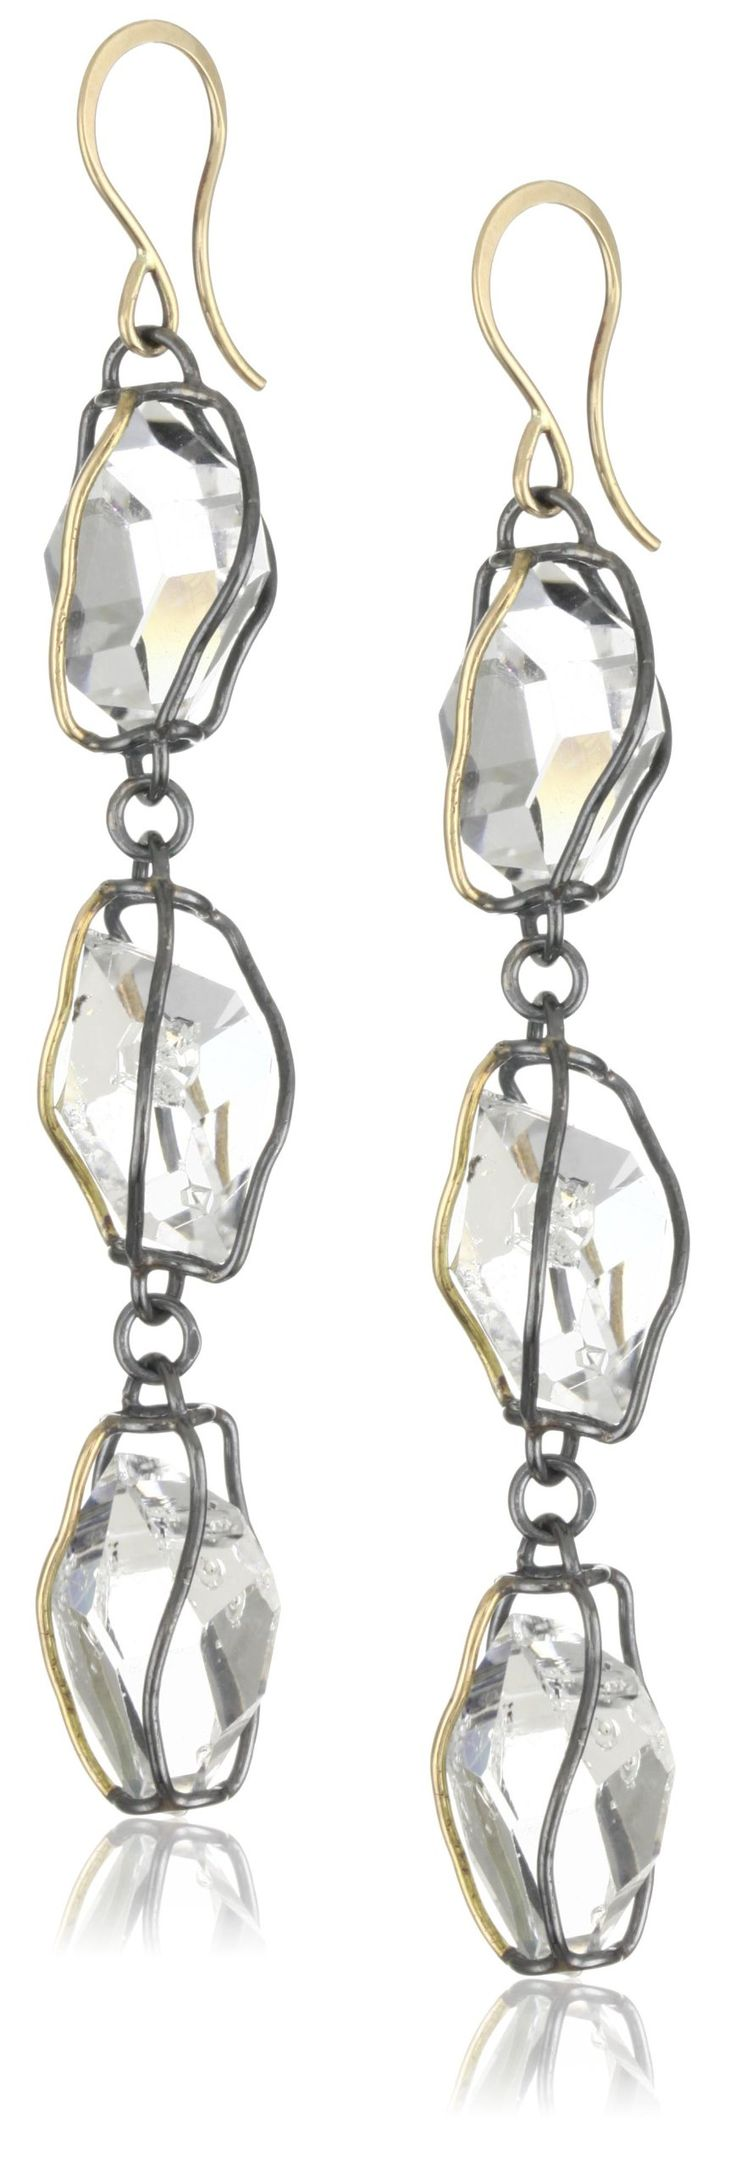 """Melissa Joy Manning """"New Elements"""" Caged Herkimer Imitation Diamond Earrings. 14k yellow gold and oxidized sterling silver three drop cage earrings with Herkimer imitation diamonds. Handmade in the artist's certified """"green"""" studio in California, each piece is crafted from 100% recycled metal. Herkimer imitation diamonds are found in one mine in Herkimer, New York. A natural crystal with a double matrix formation, it refracts light similar to a diamond- hence, the name. Herkimer imitation..."""